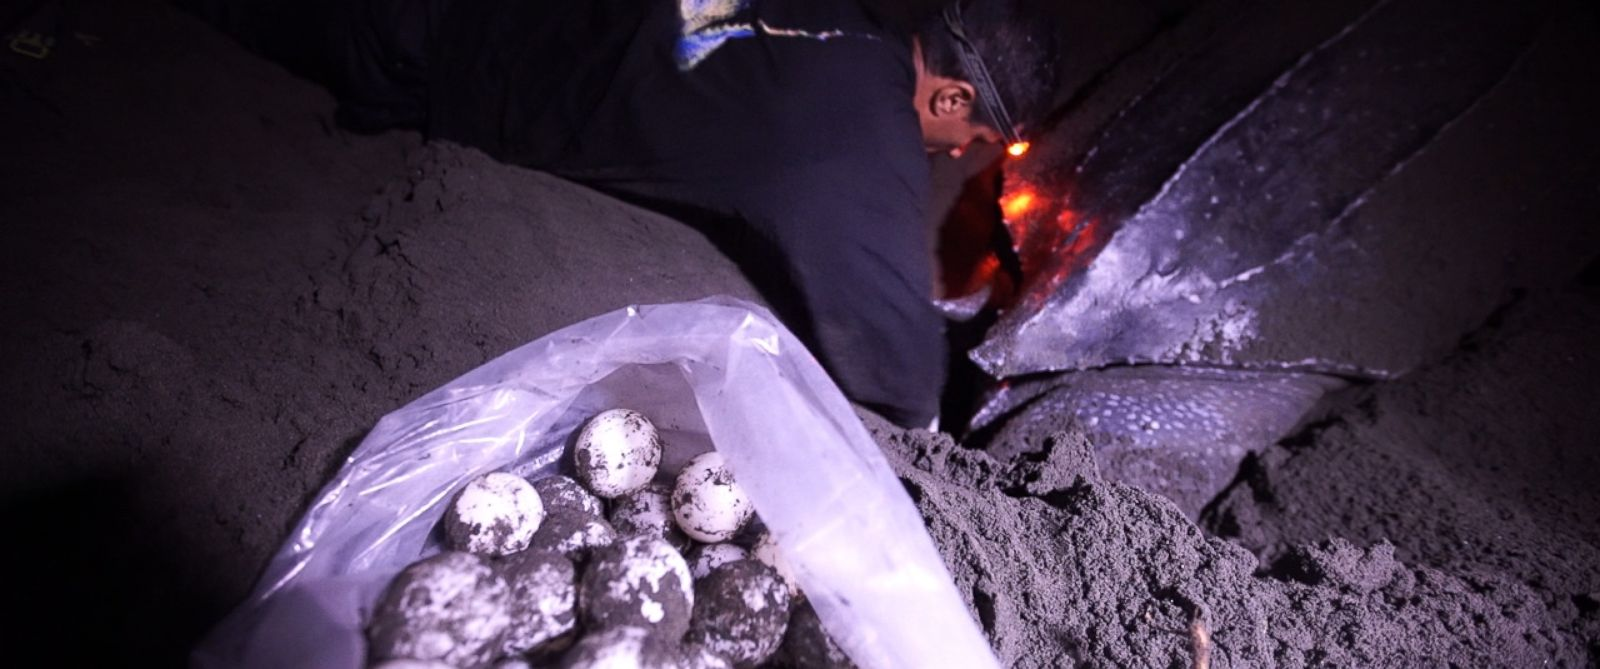 Conservationists try to collect leatherback turtle eggs on Moin Beach in Costa Rica before the poachers do so they can transport them to a hatchery.